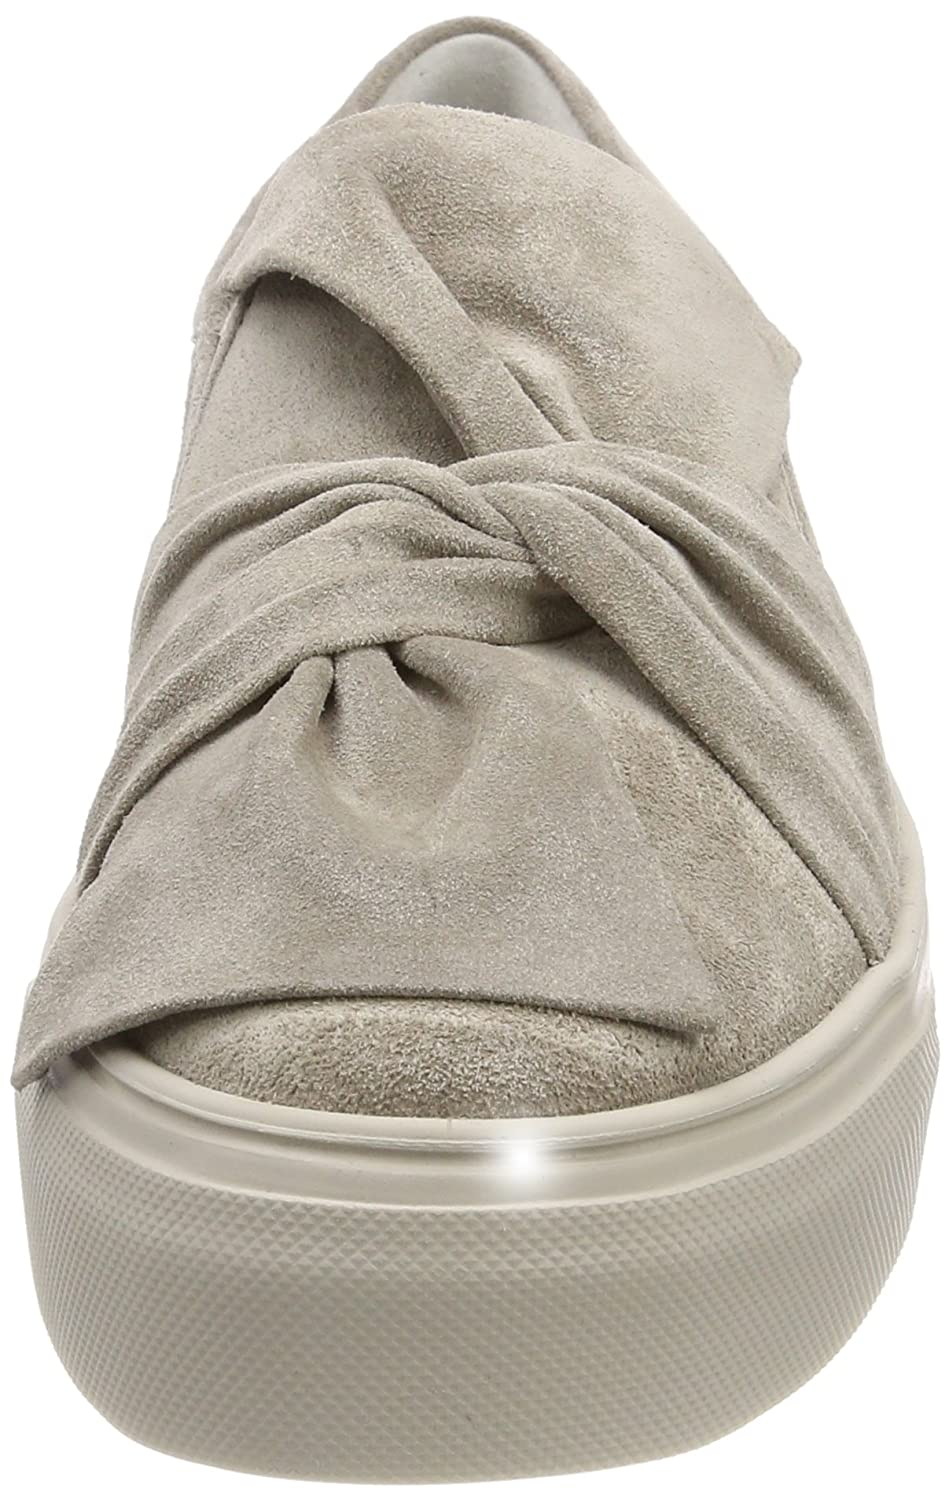 Kennel Sneaker und Schmenger Damen Big Slip on Sneaker Kennel Braun (Ombra Sohle Creme) 6c308d